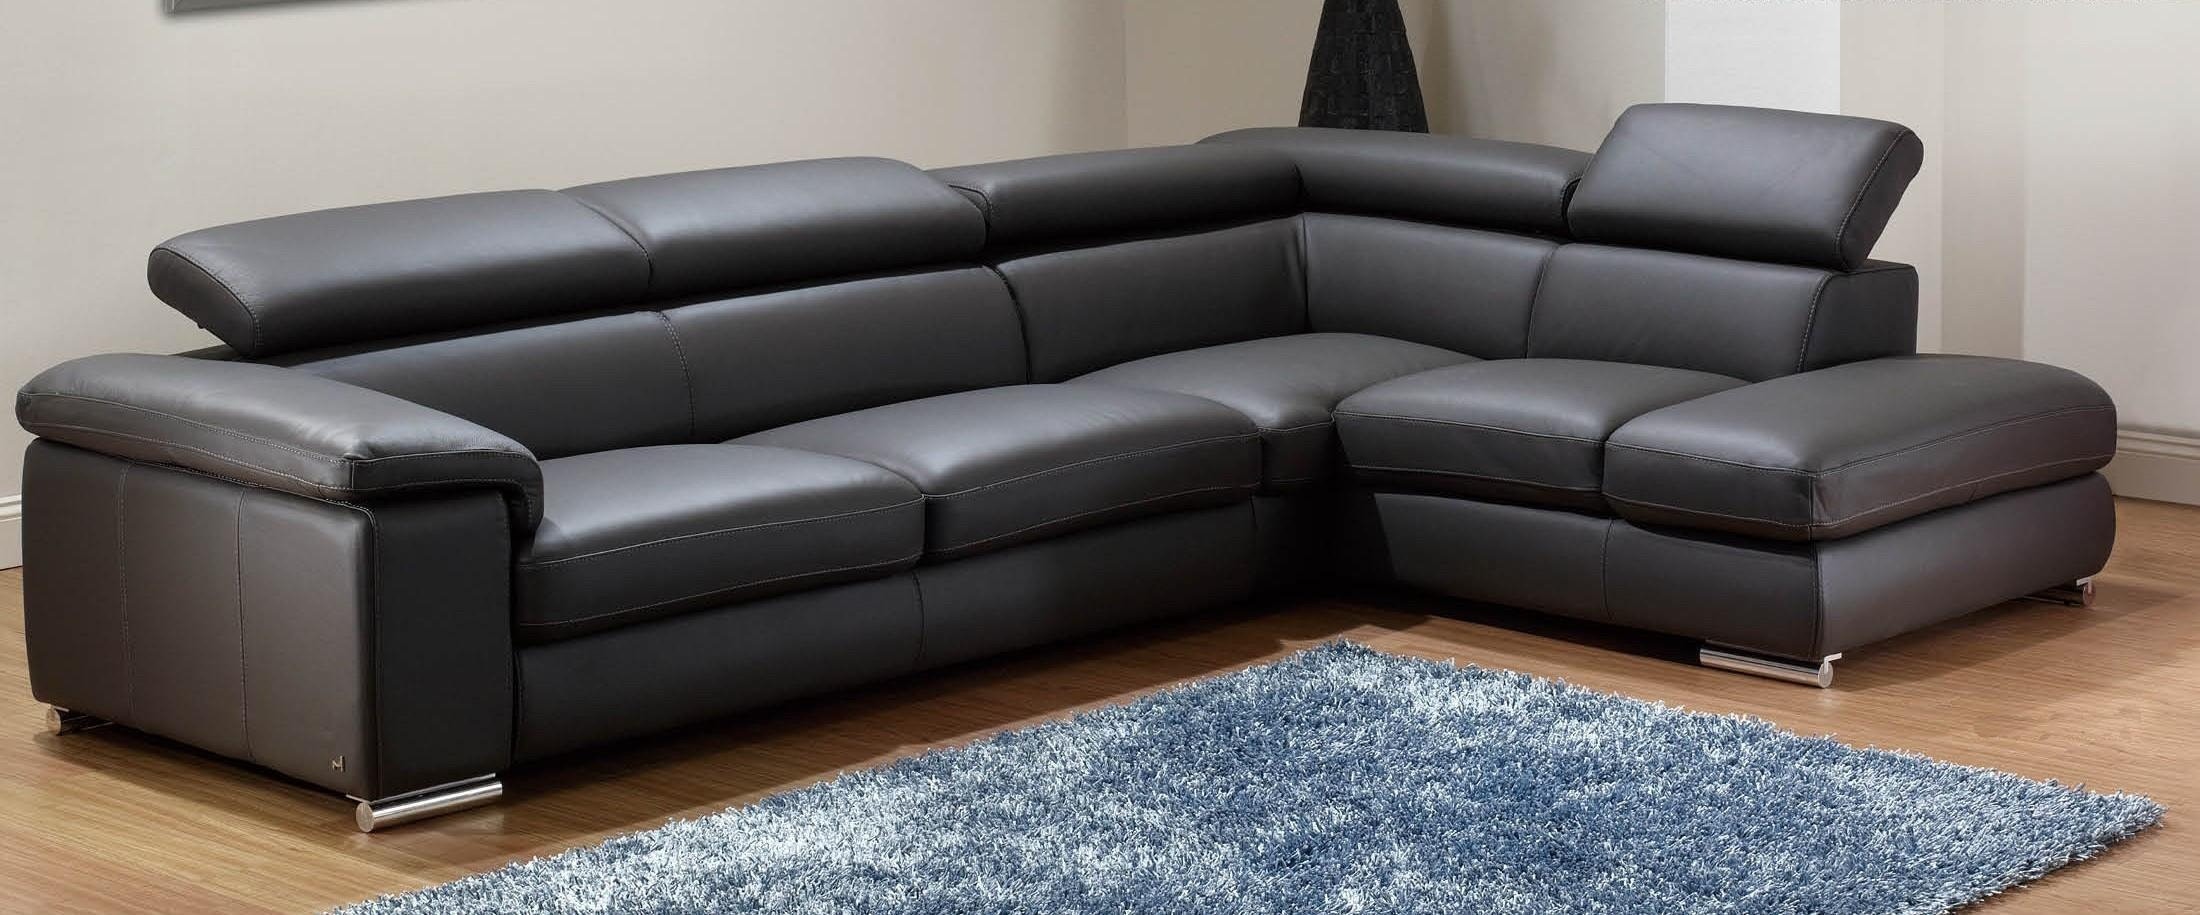 Furniture: Mid Century Modern Couch And West Elm Couch Also With Mid Century Modern Leather Sectional (Image 5 of 20)